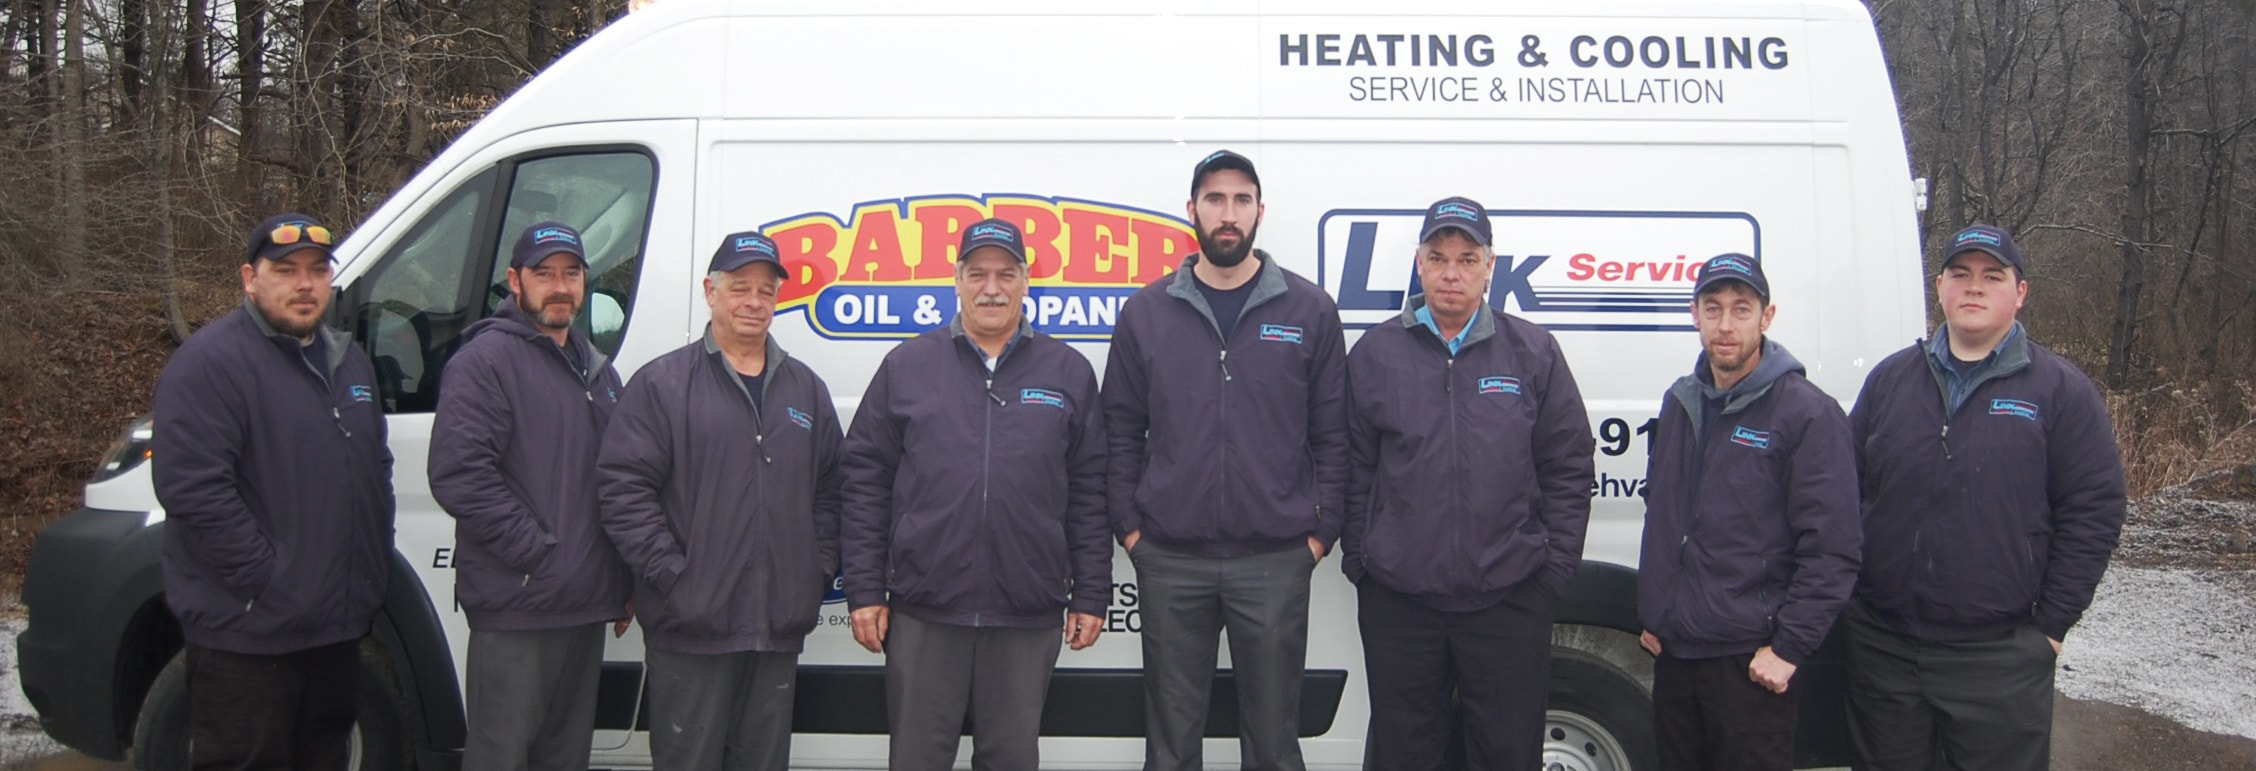 Link Heating and Cooling truck with technicians.